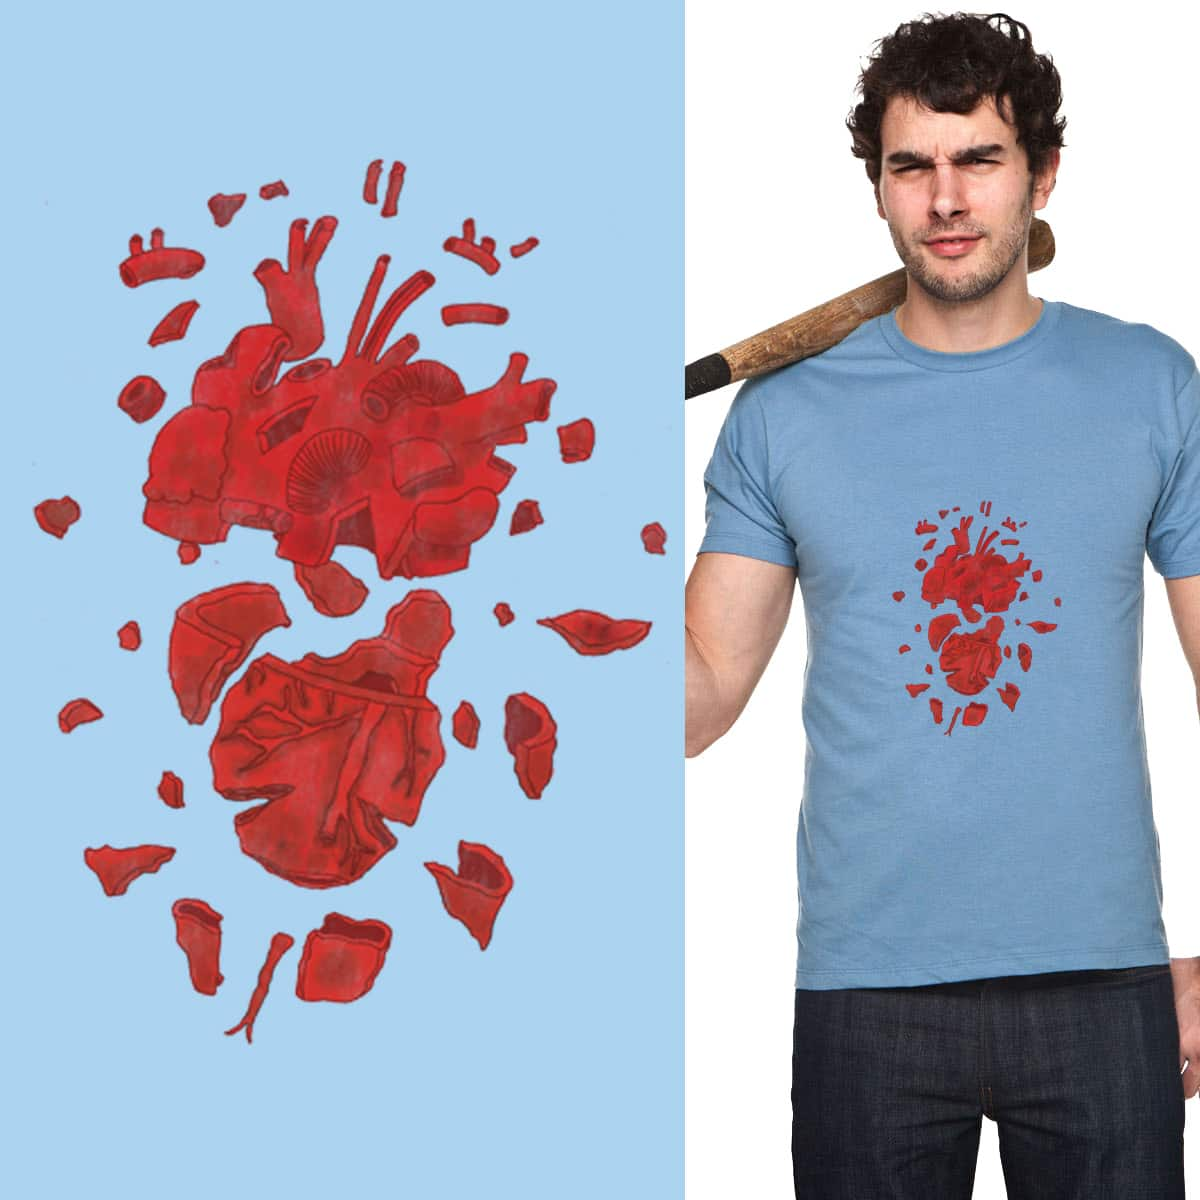 I'm A Broken Hearted Man by Eyedope on Threadless